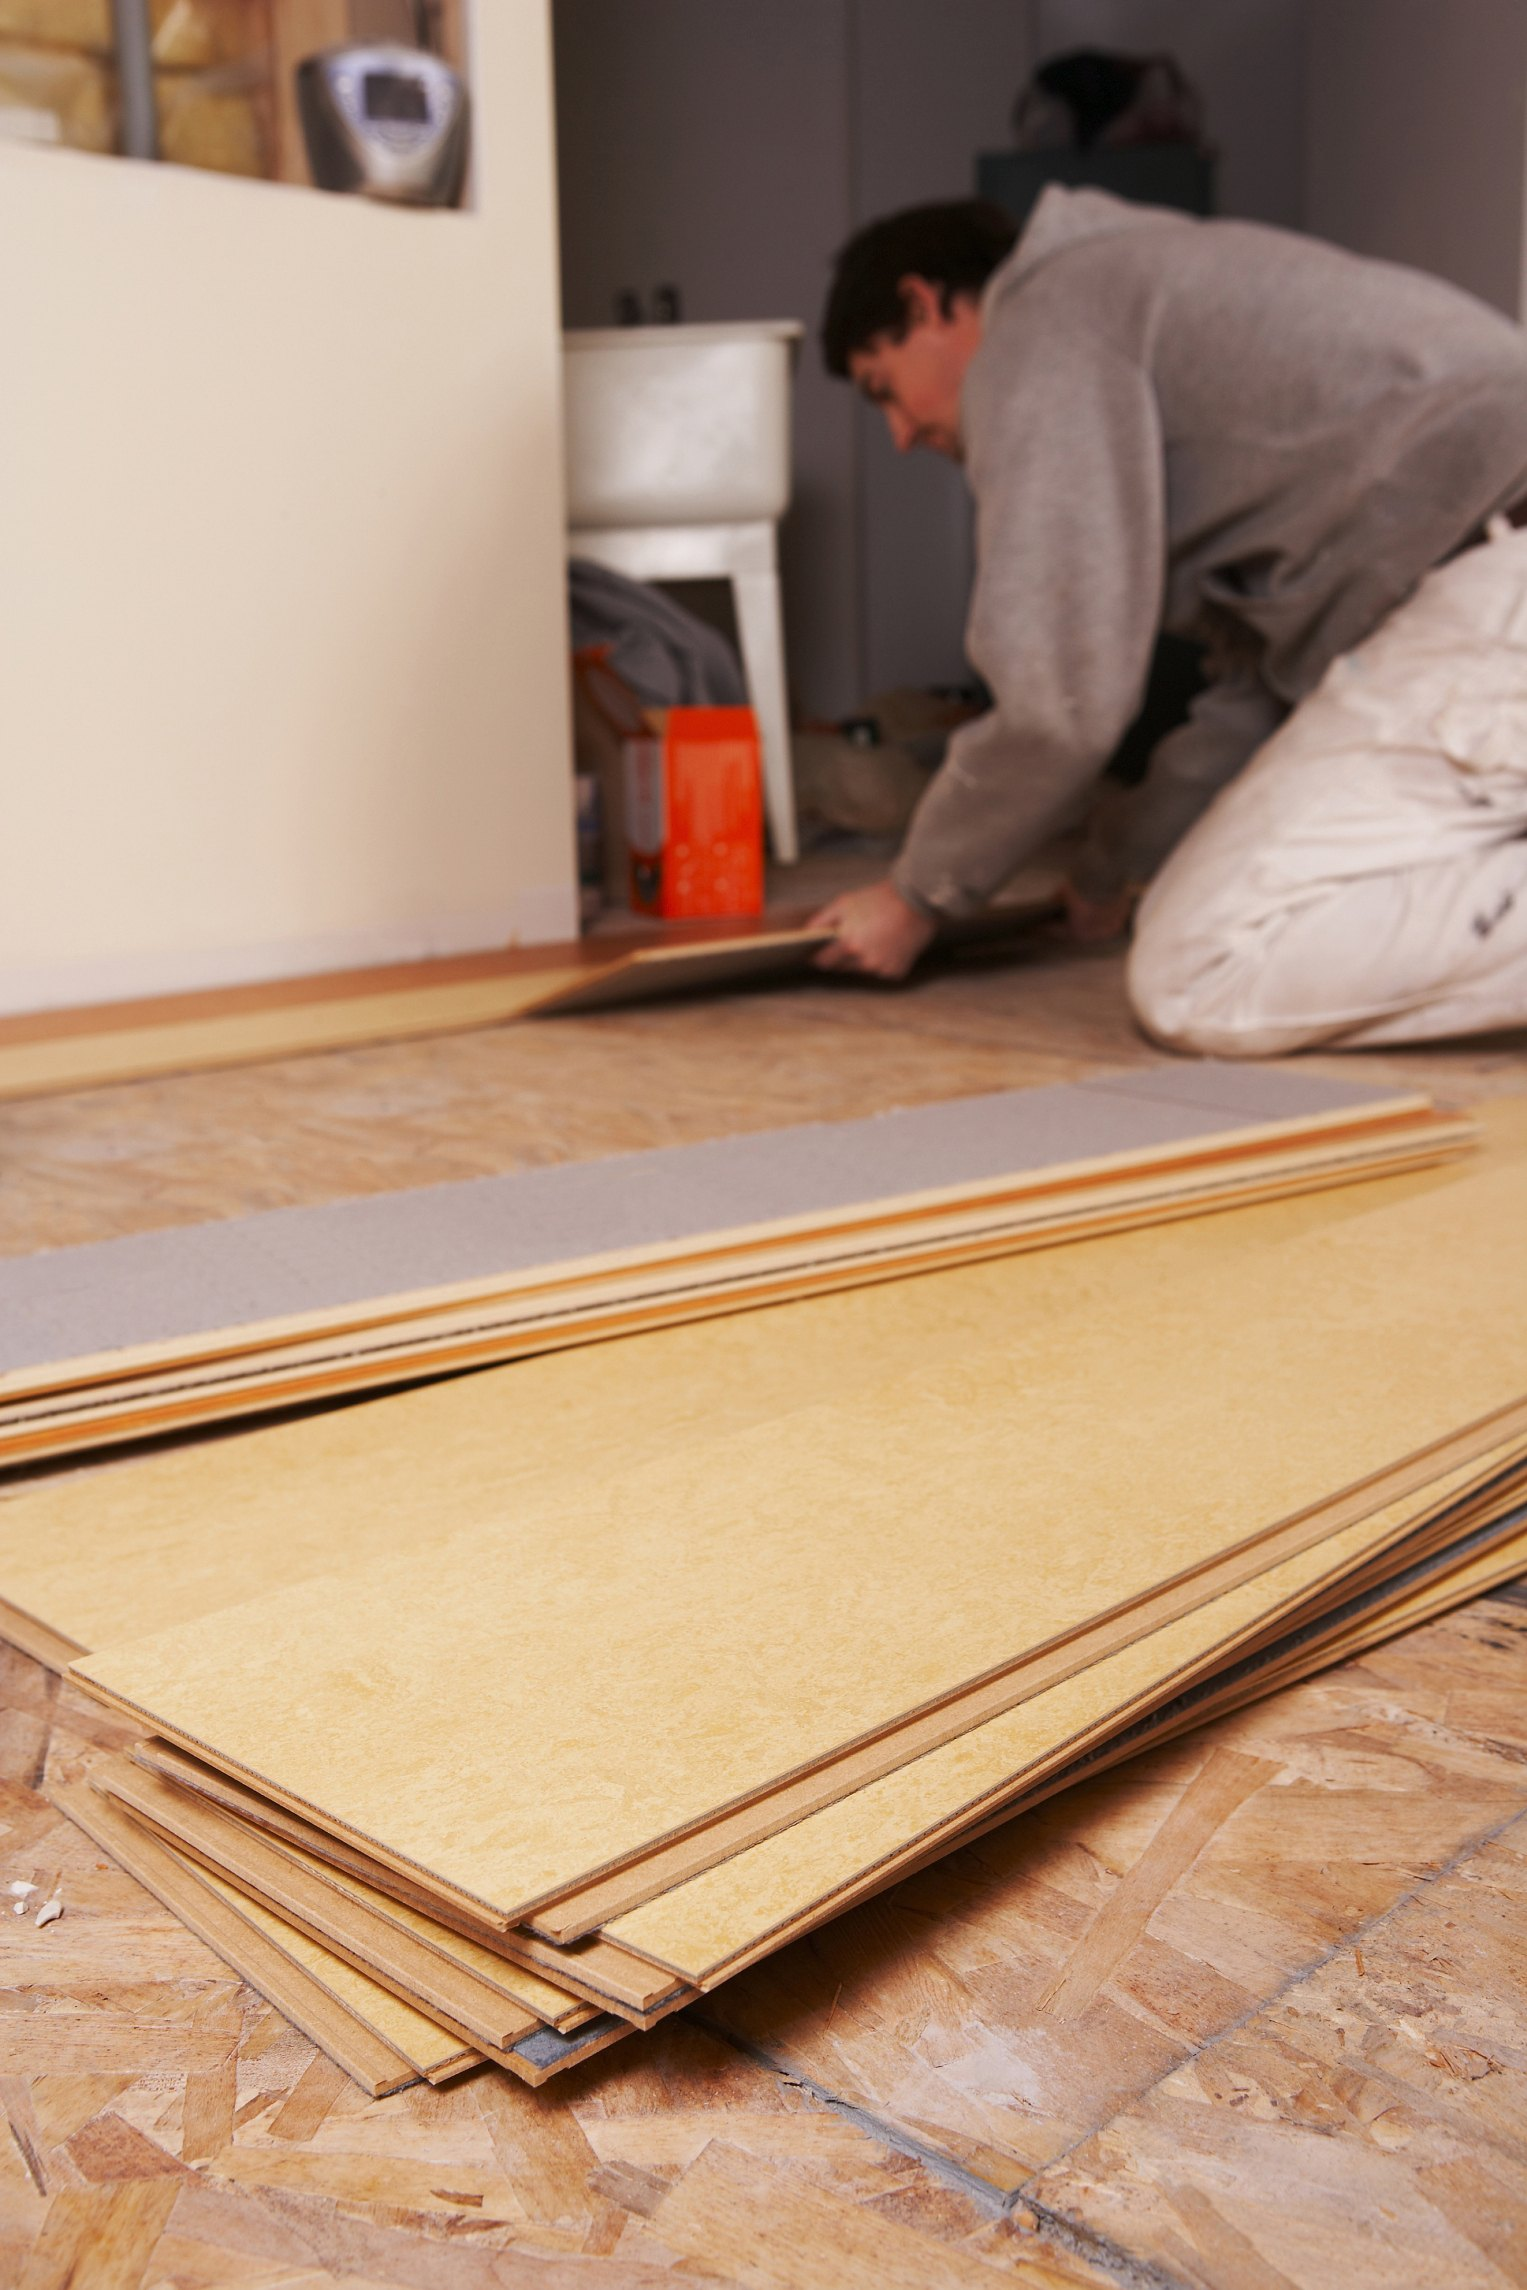 How to lay laminate flooring on concrete ehow for Laying laminate flooring